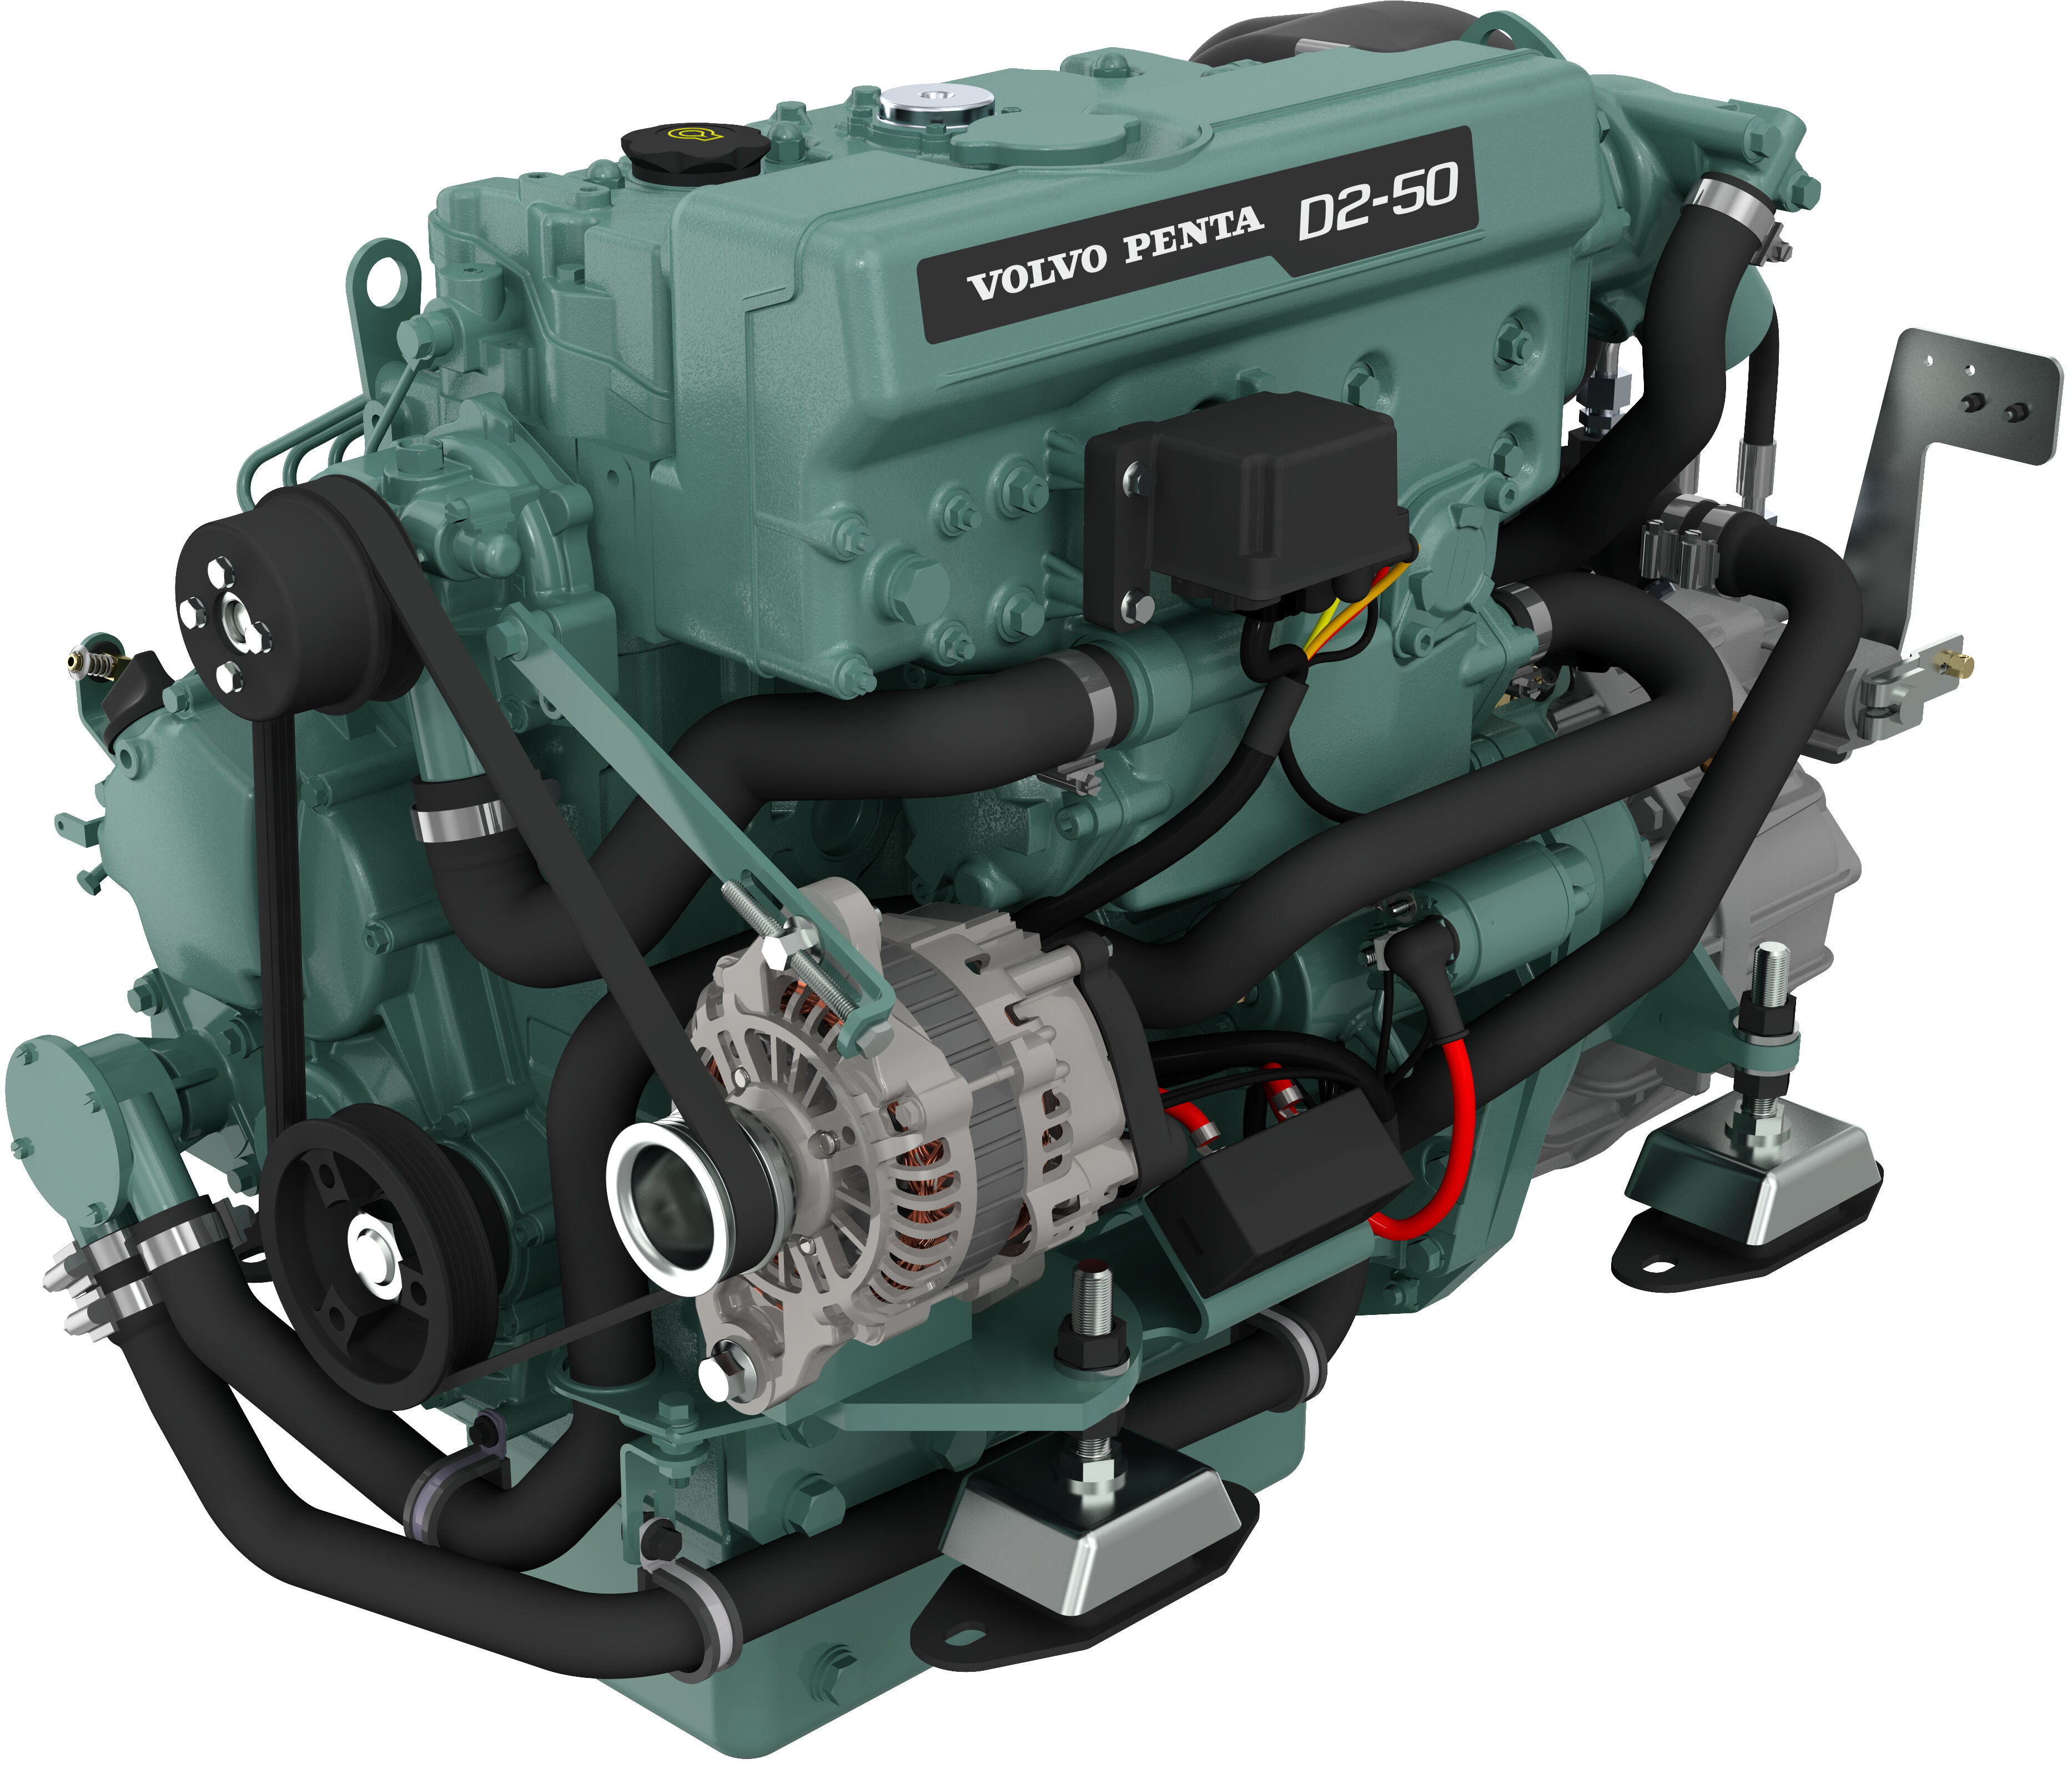 D2-50 With HS25A Gearbox